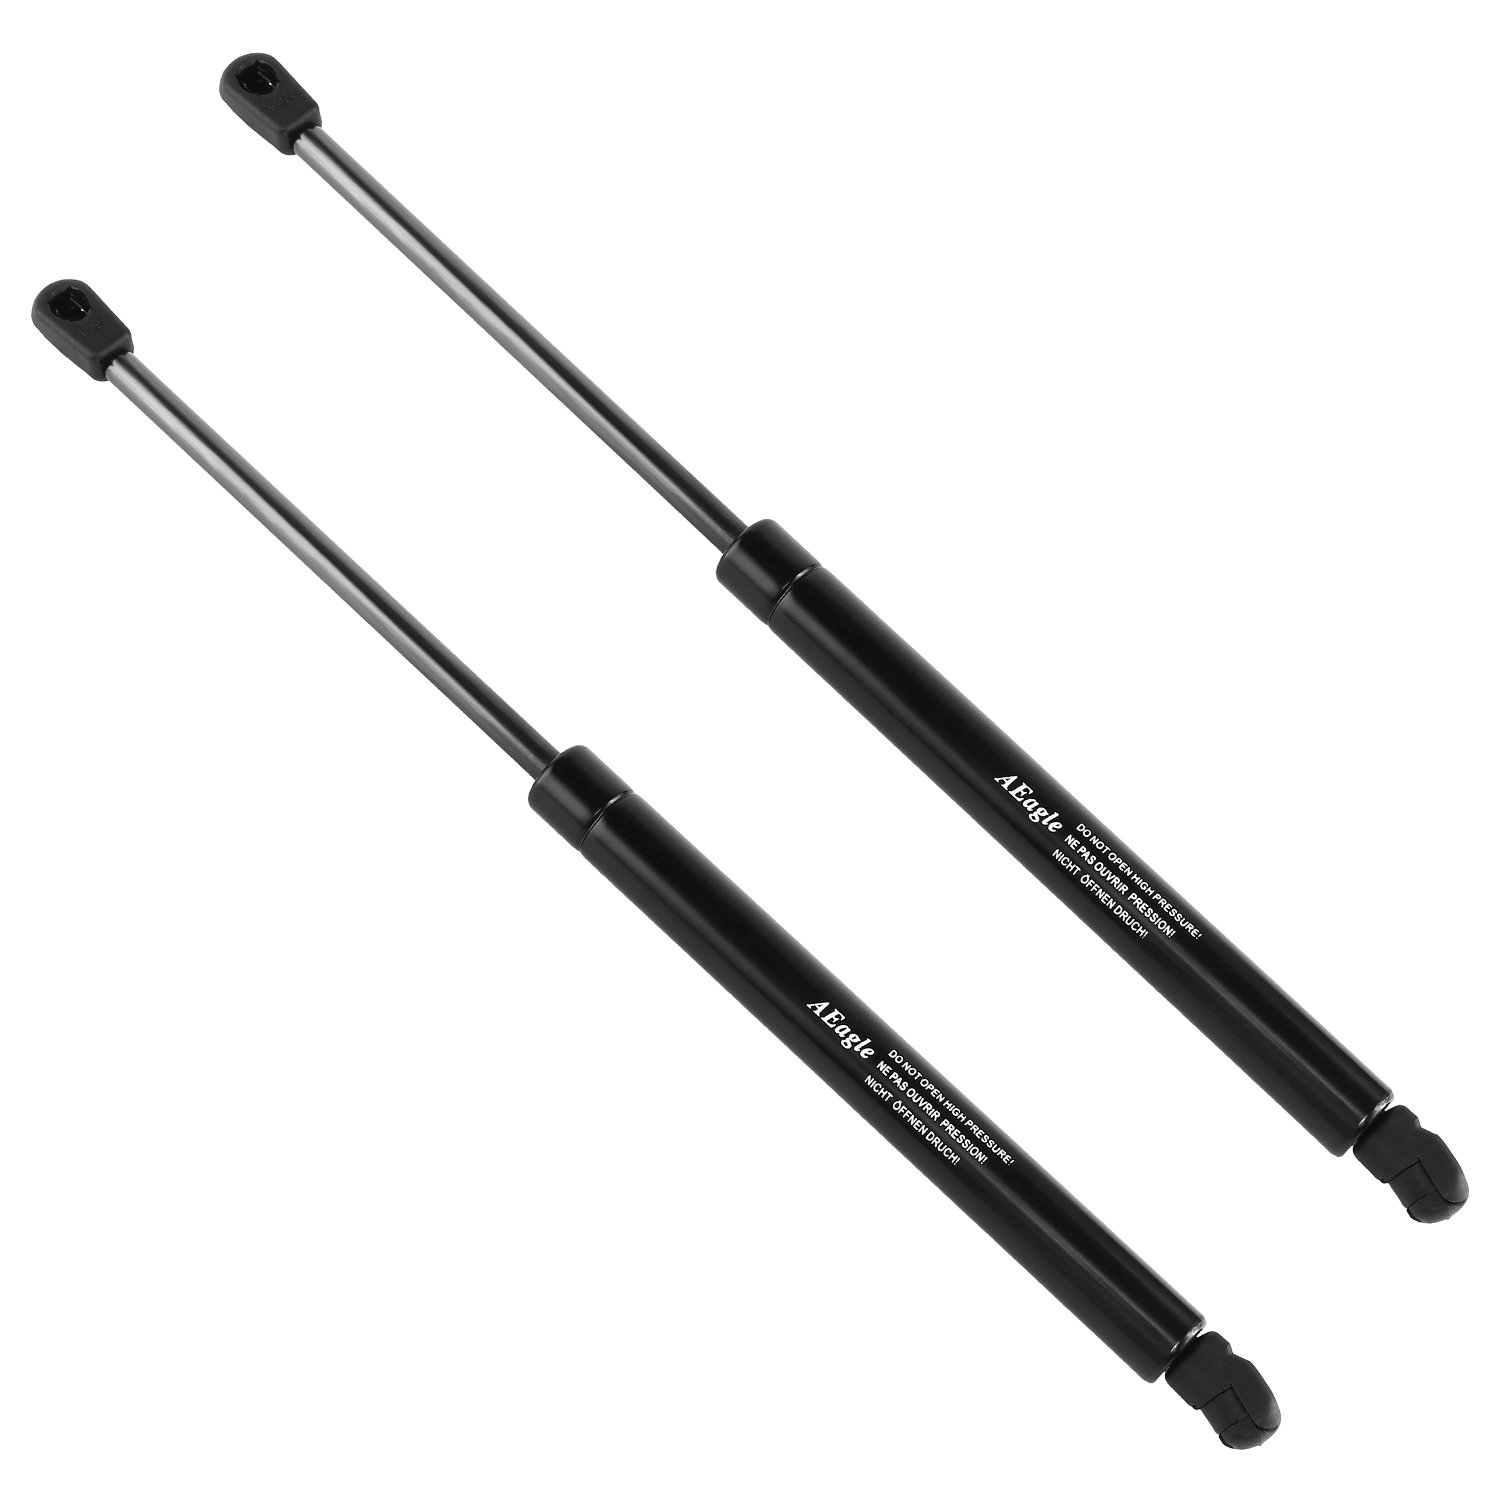 Front Hood Lift Supports Gas Springs Shocks Struts for 2002-2007 Jeep Liberty 4366 SG314037 AEagle